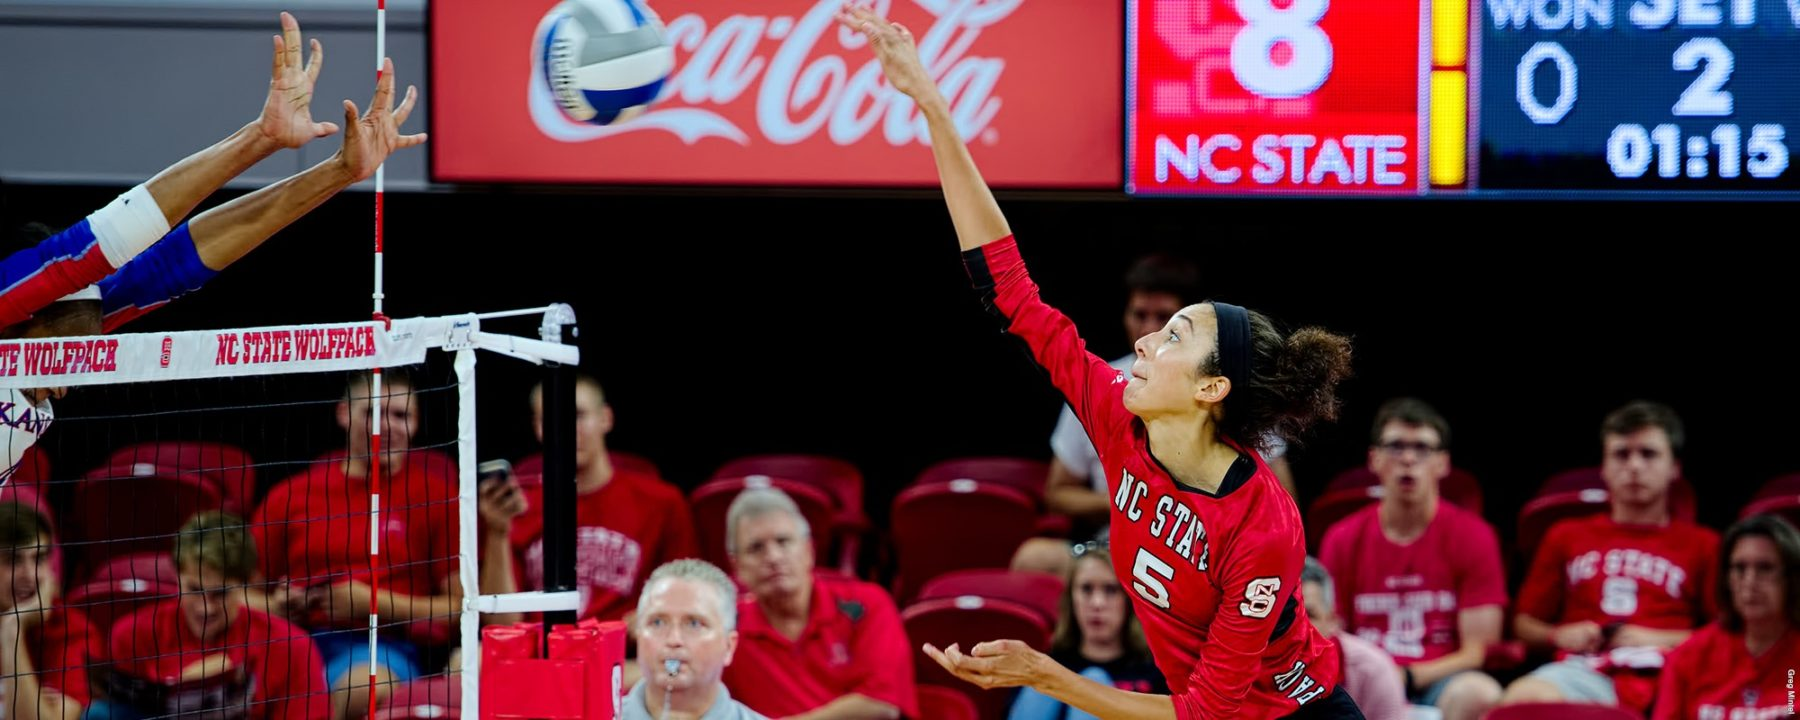 N.C. State's Bailey Records 1000th Kill in Loss to #21 Michigan